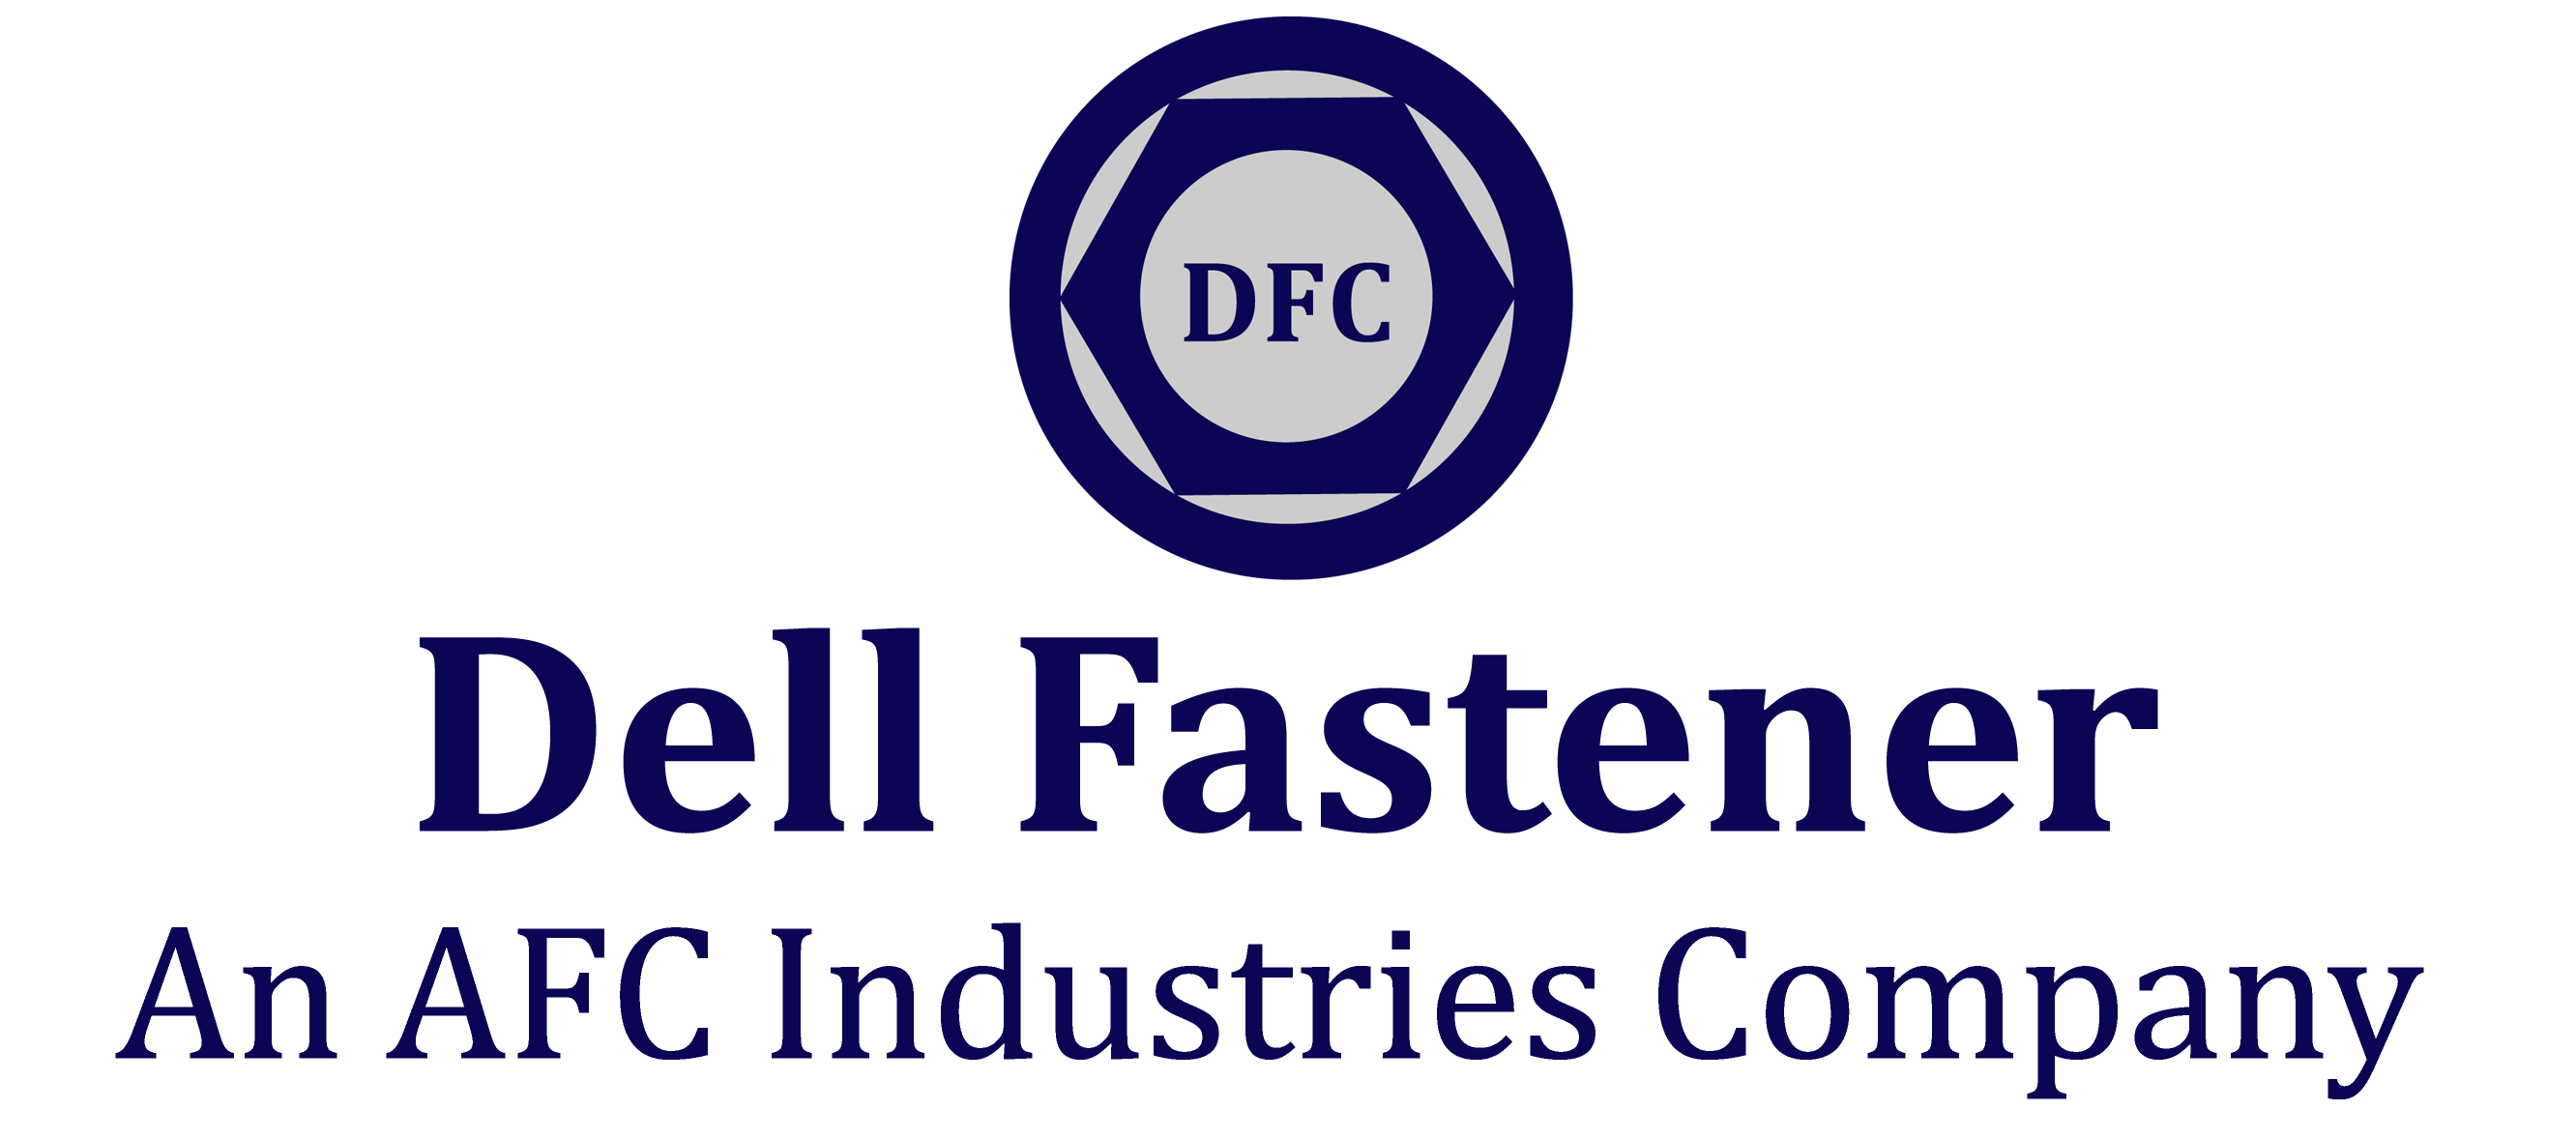 Dell Fastener - an AFC Industries Company